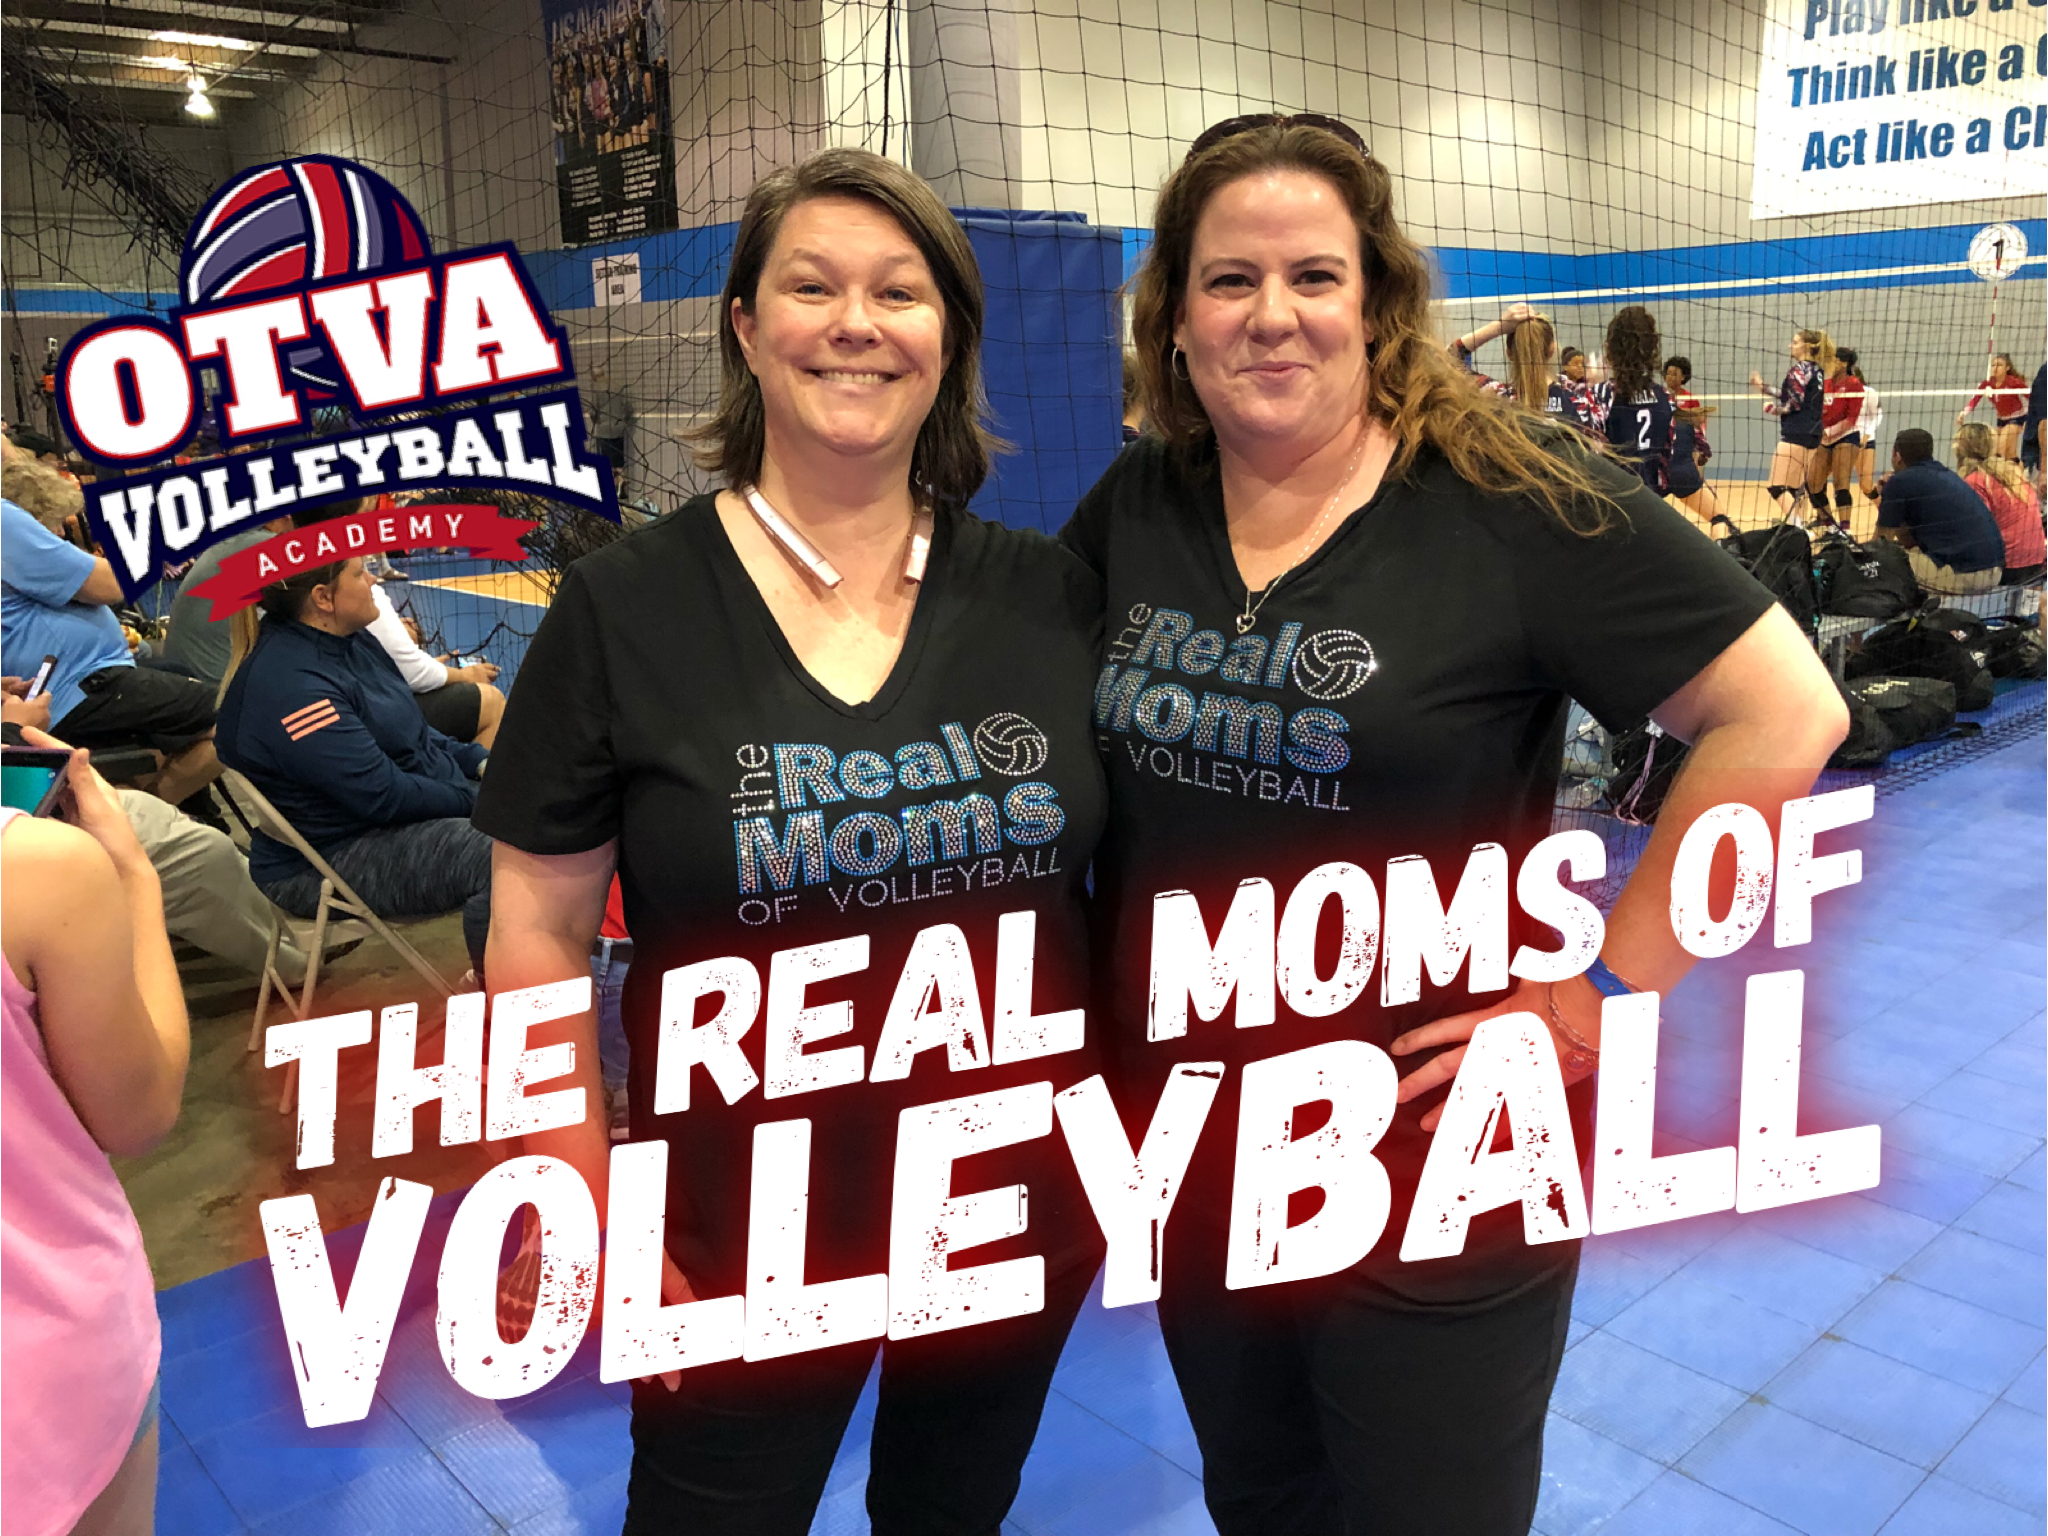 Pin By Otva Longwood On Events Real Moms Women Mom